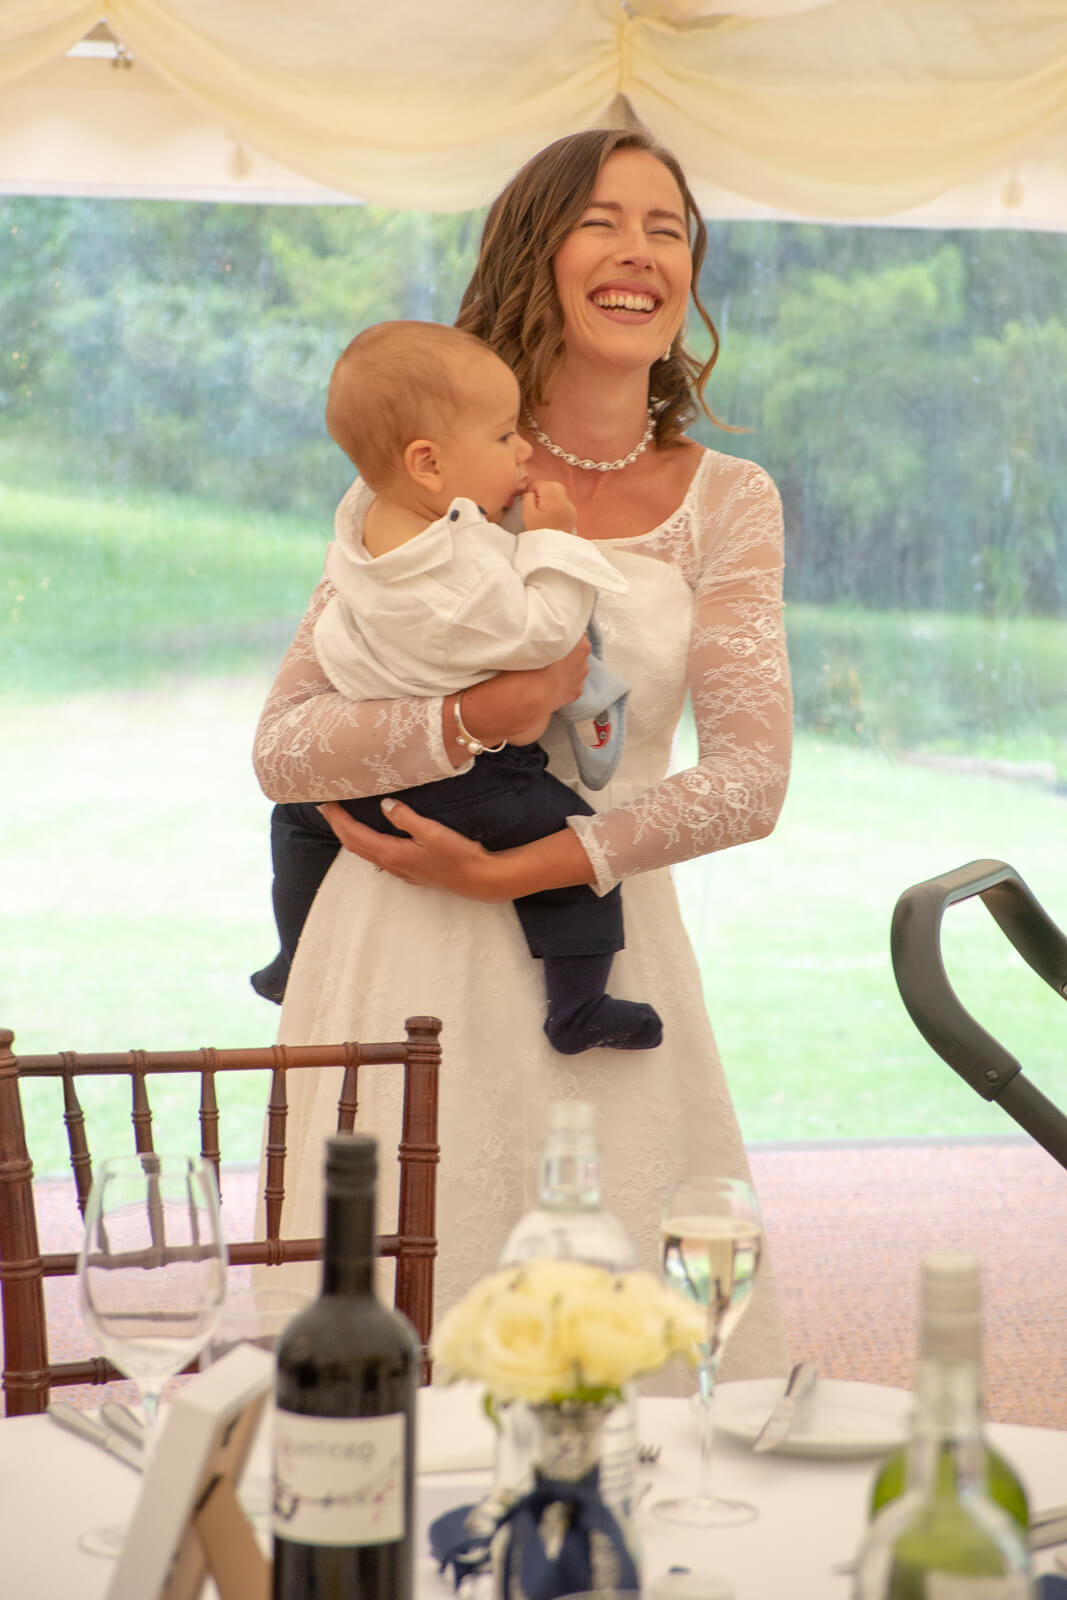 Bride holding baby laughs at wedding speeches in a marquee